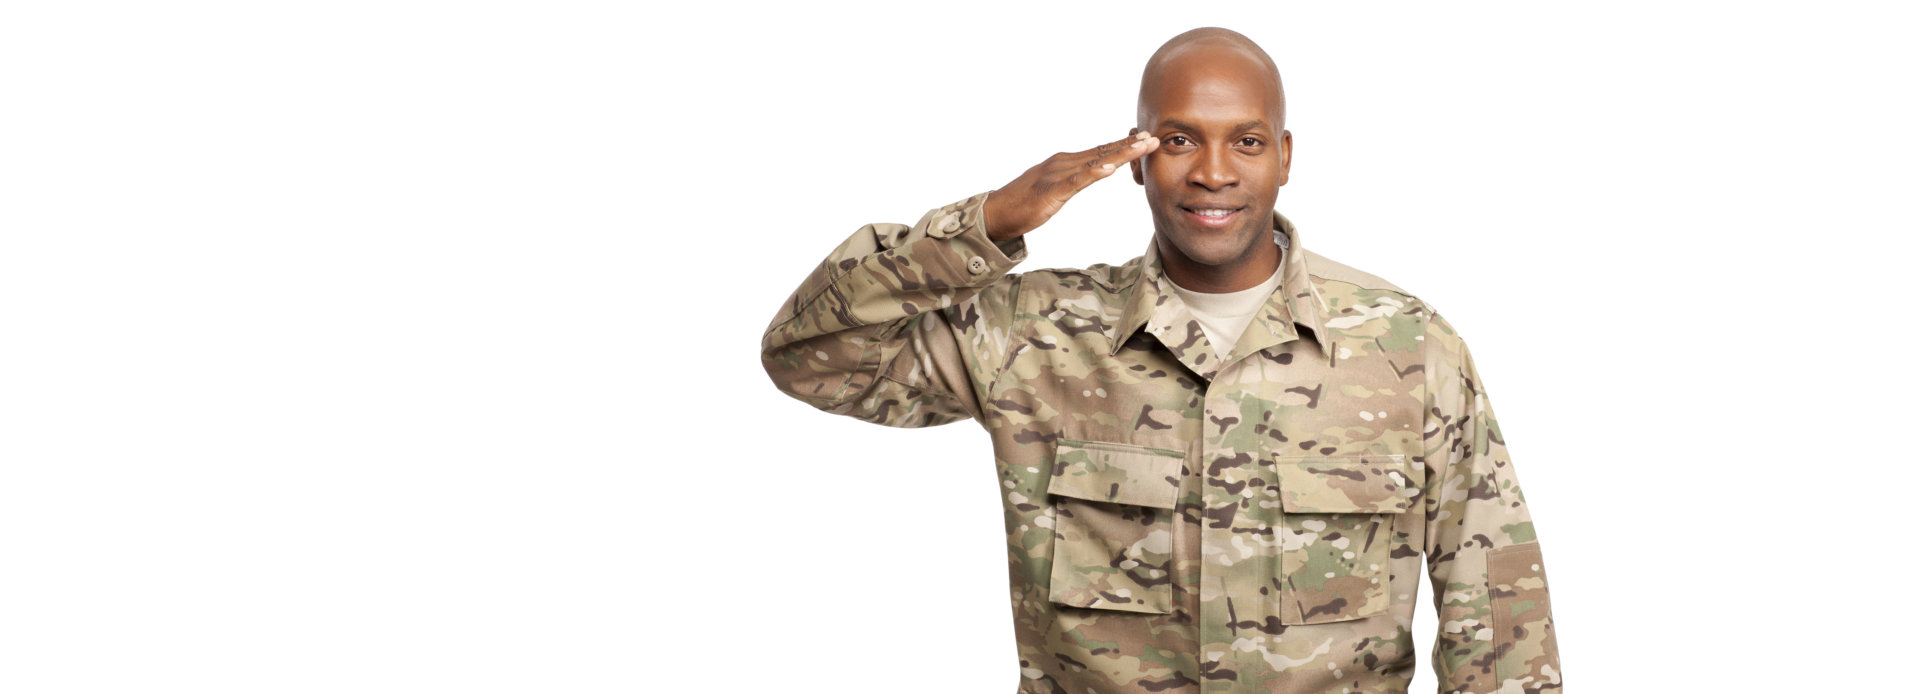 smiling army man doing a salute